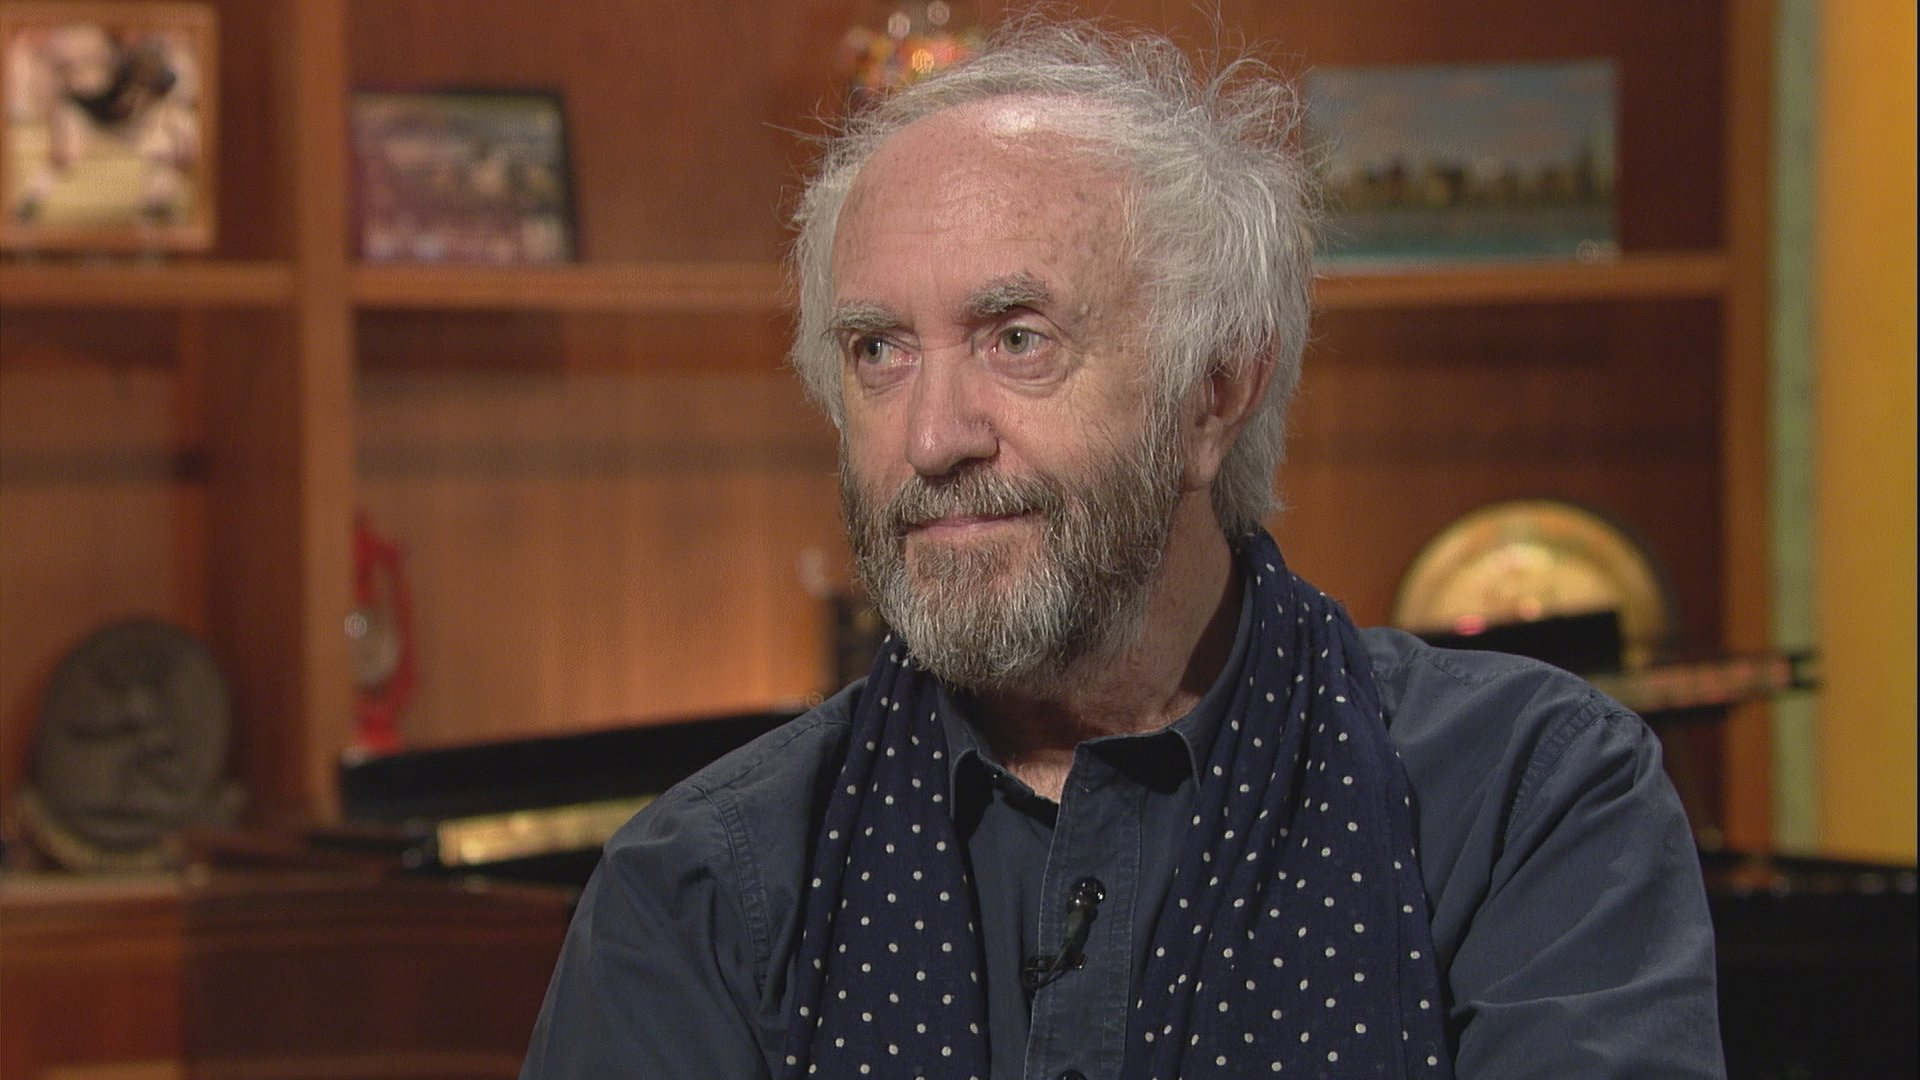 jonathan pryce pirates of the caribbeanjonathan pryce brazil, jonathan pryce pirates of the caribbean, jonathan pryce height, jonathan pryce net worth, jonathan pryce musical, jonathan pryce filmographie, jonathan pryce instagram, jonathan pryce singing, jonathan pryce game of thrones, jonathan pryce river phoenix, jonathan pryce command and conquer, jonathan pryce daughter, jonathan pryce imdb, jonathan pryce, jonathan pryce pope francis, jonathan pryce actor, jonathan pryce wiki, jonathan pryce hamlet, jonathan pryce young, jonathan pryce films